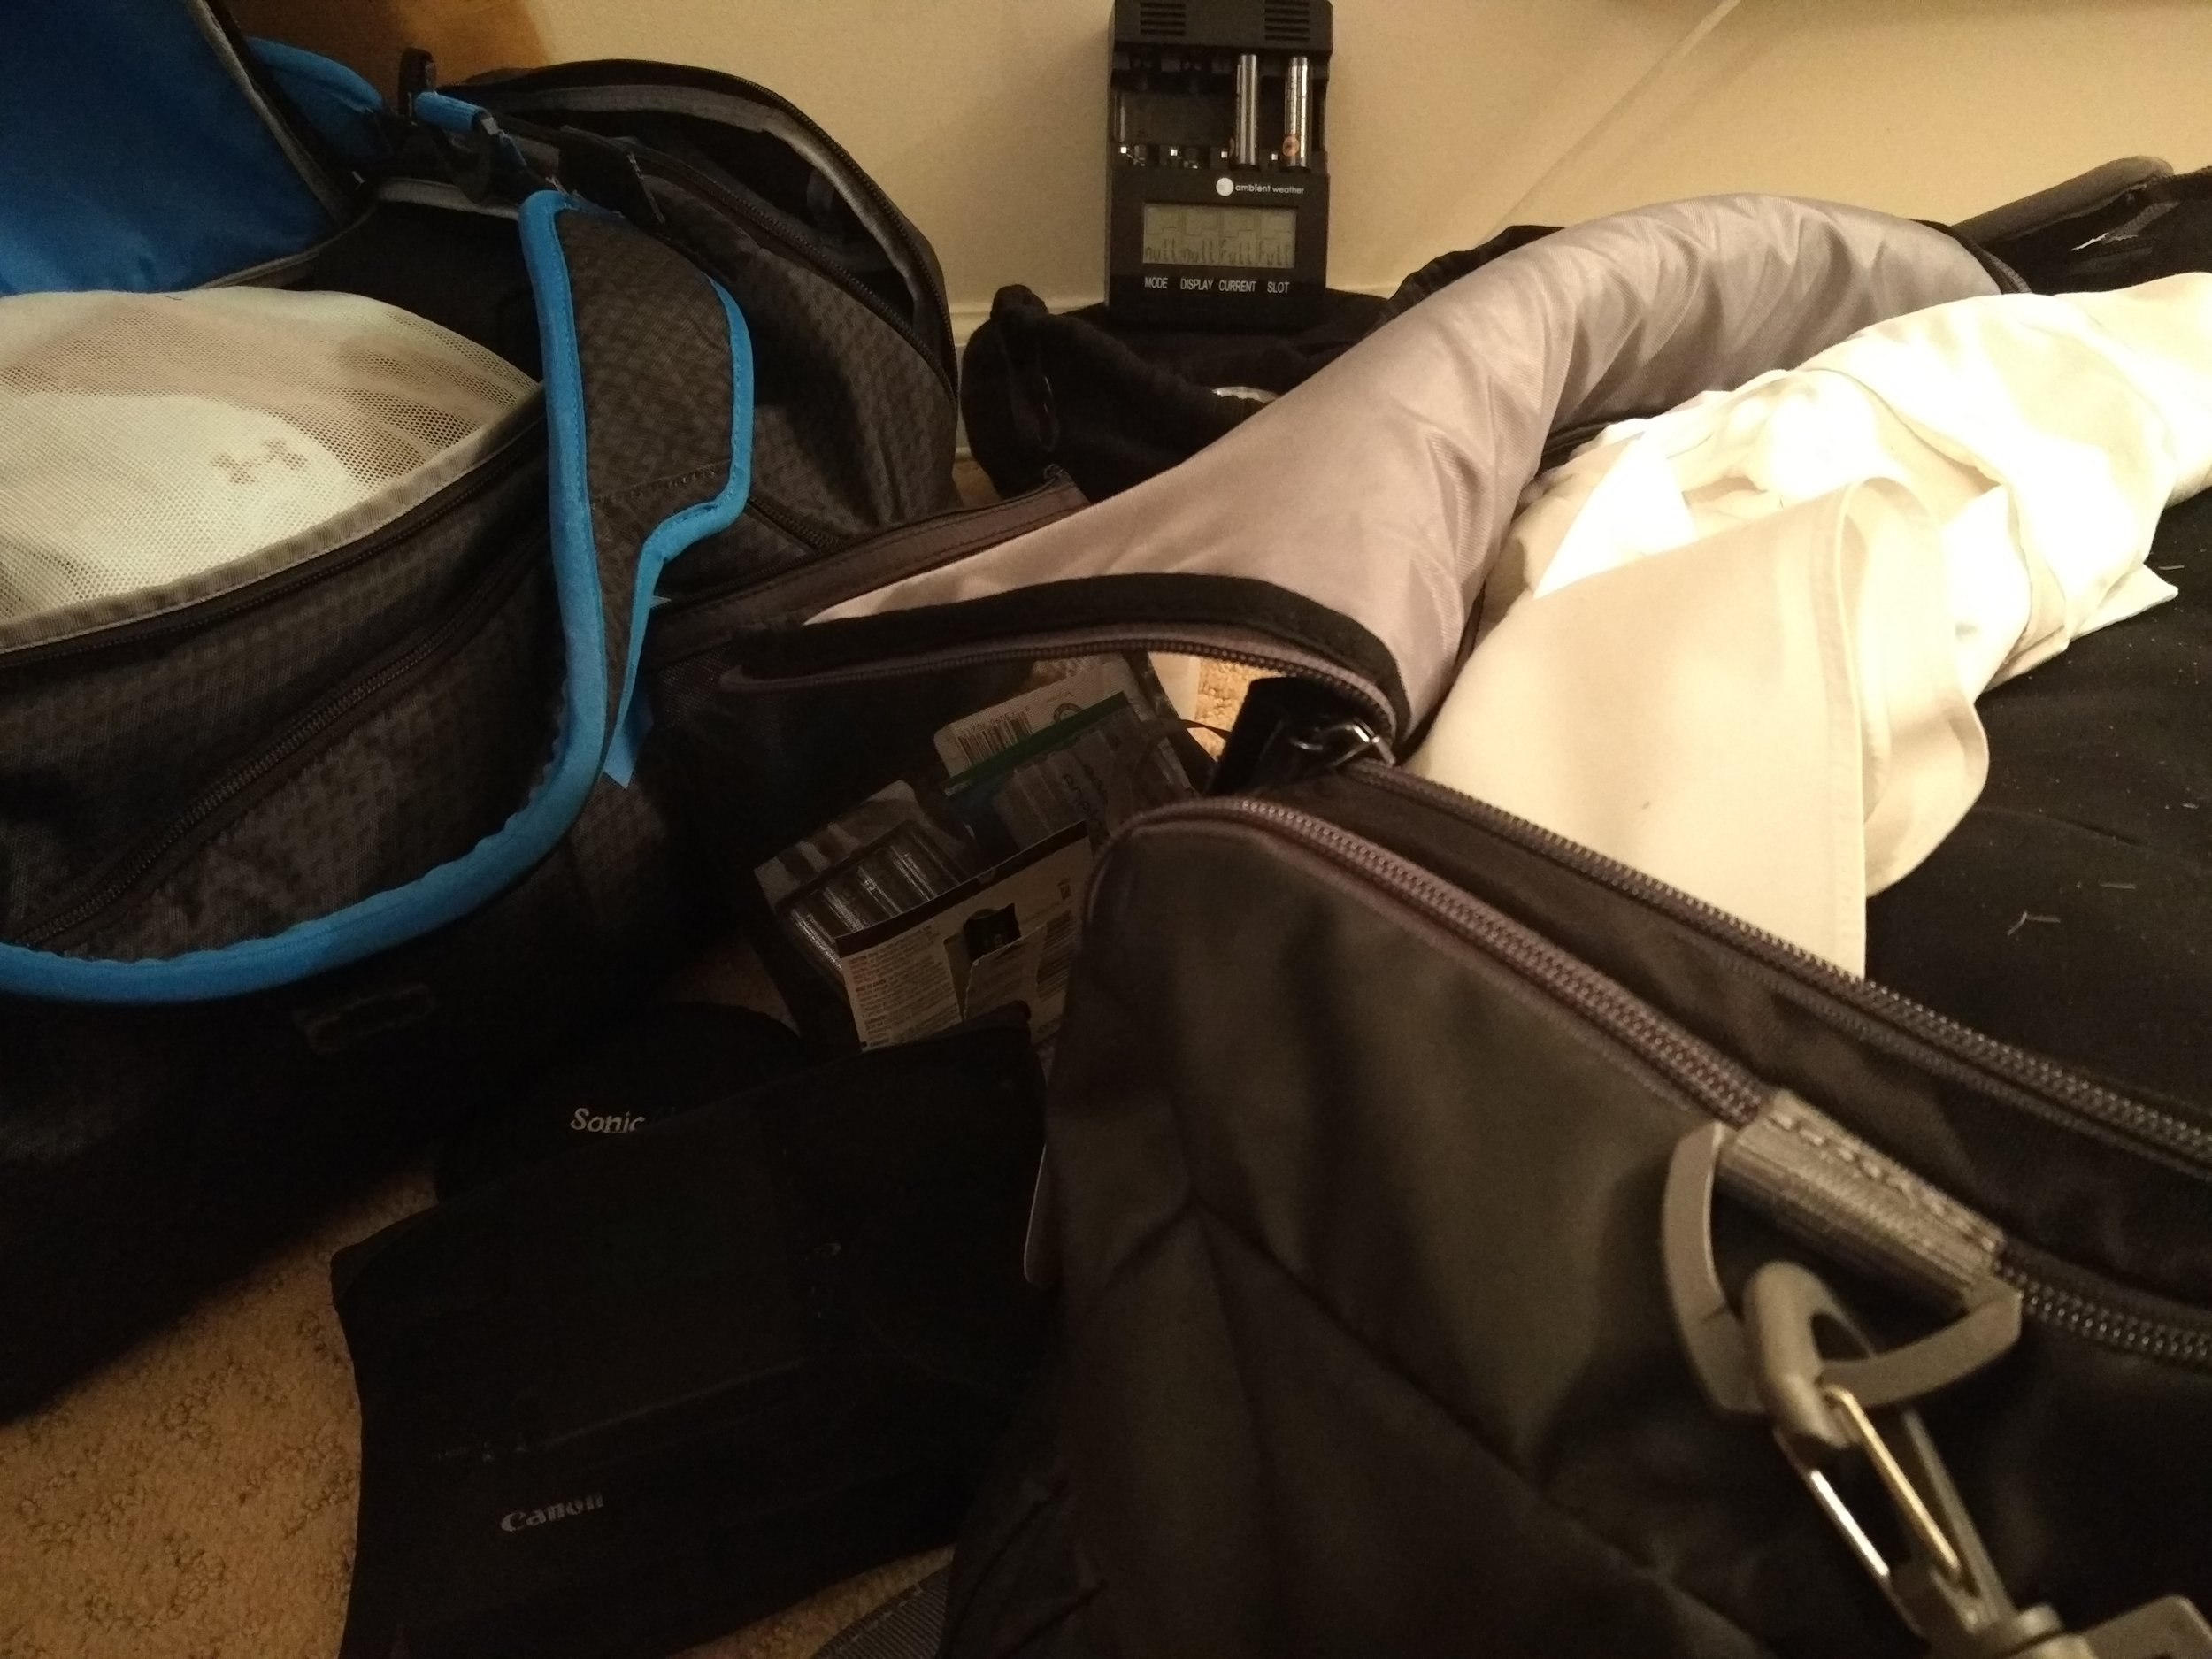 Camera gear and wedding clothes, all in our carry-on luggage!